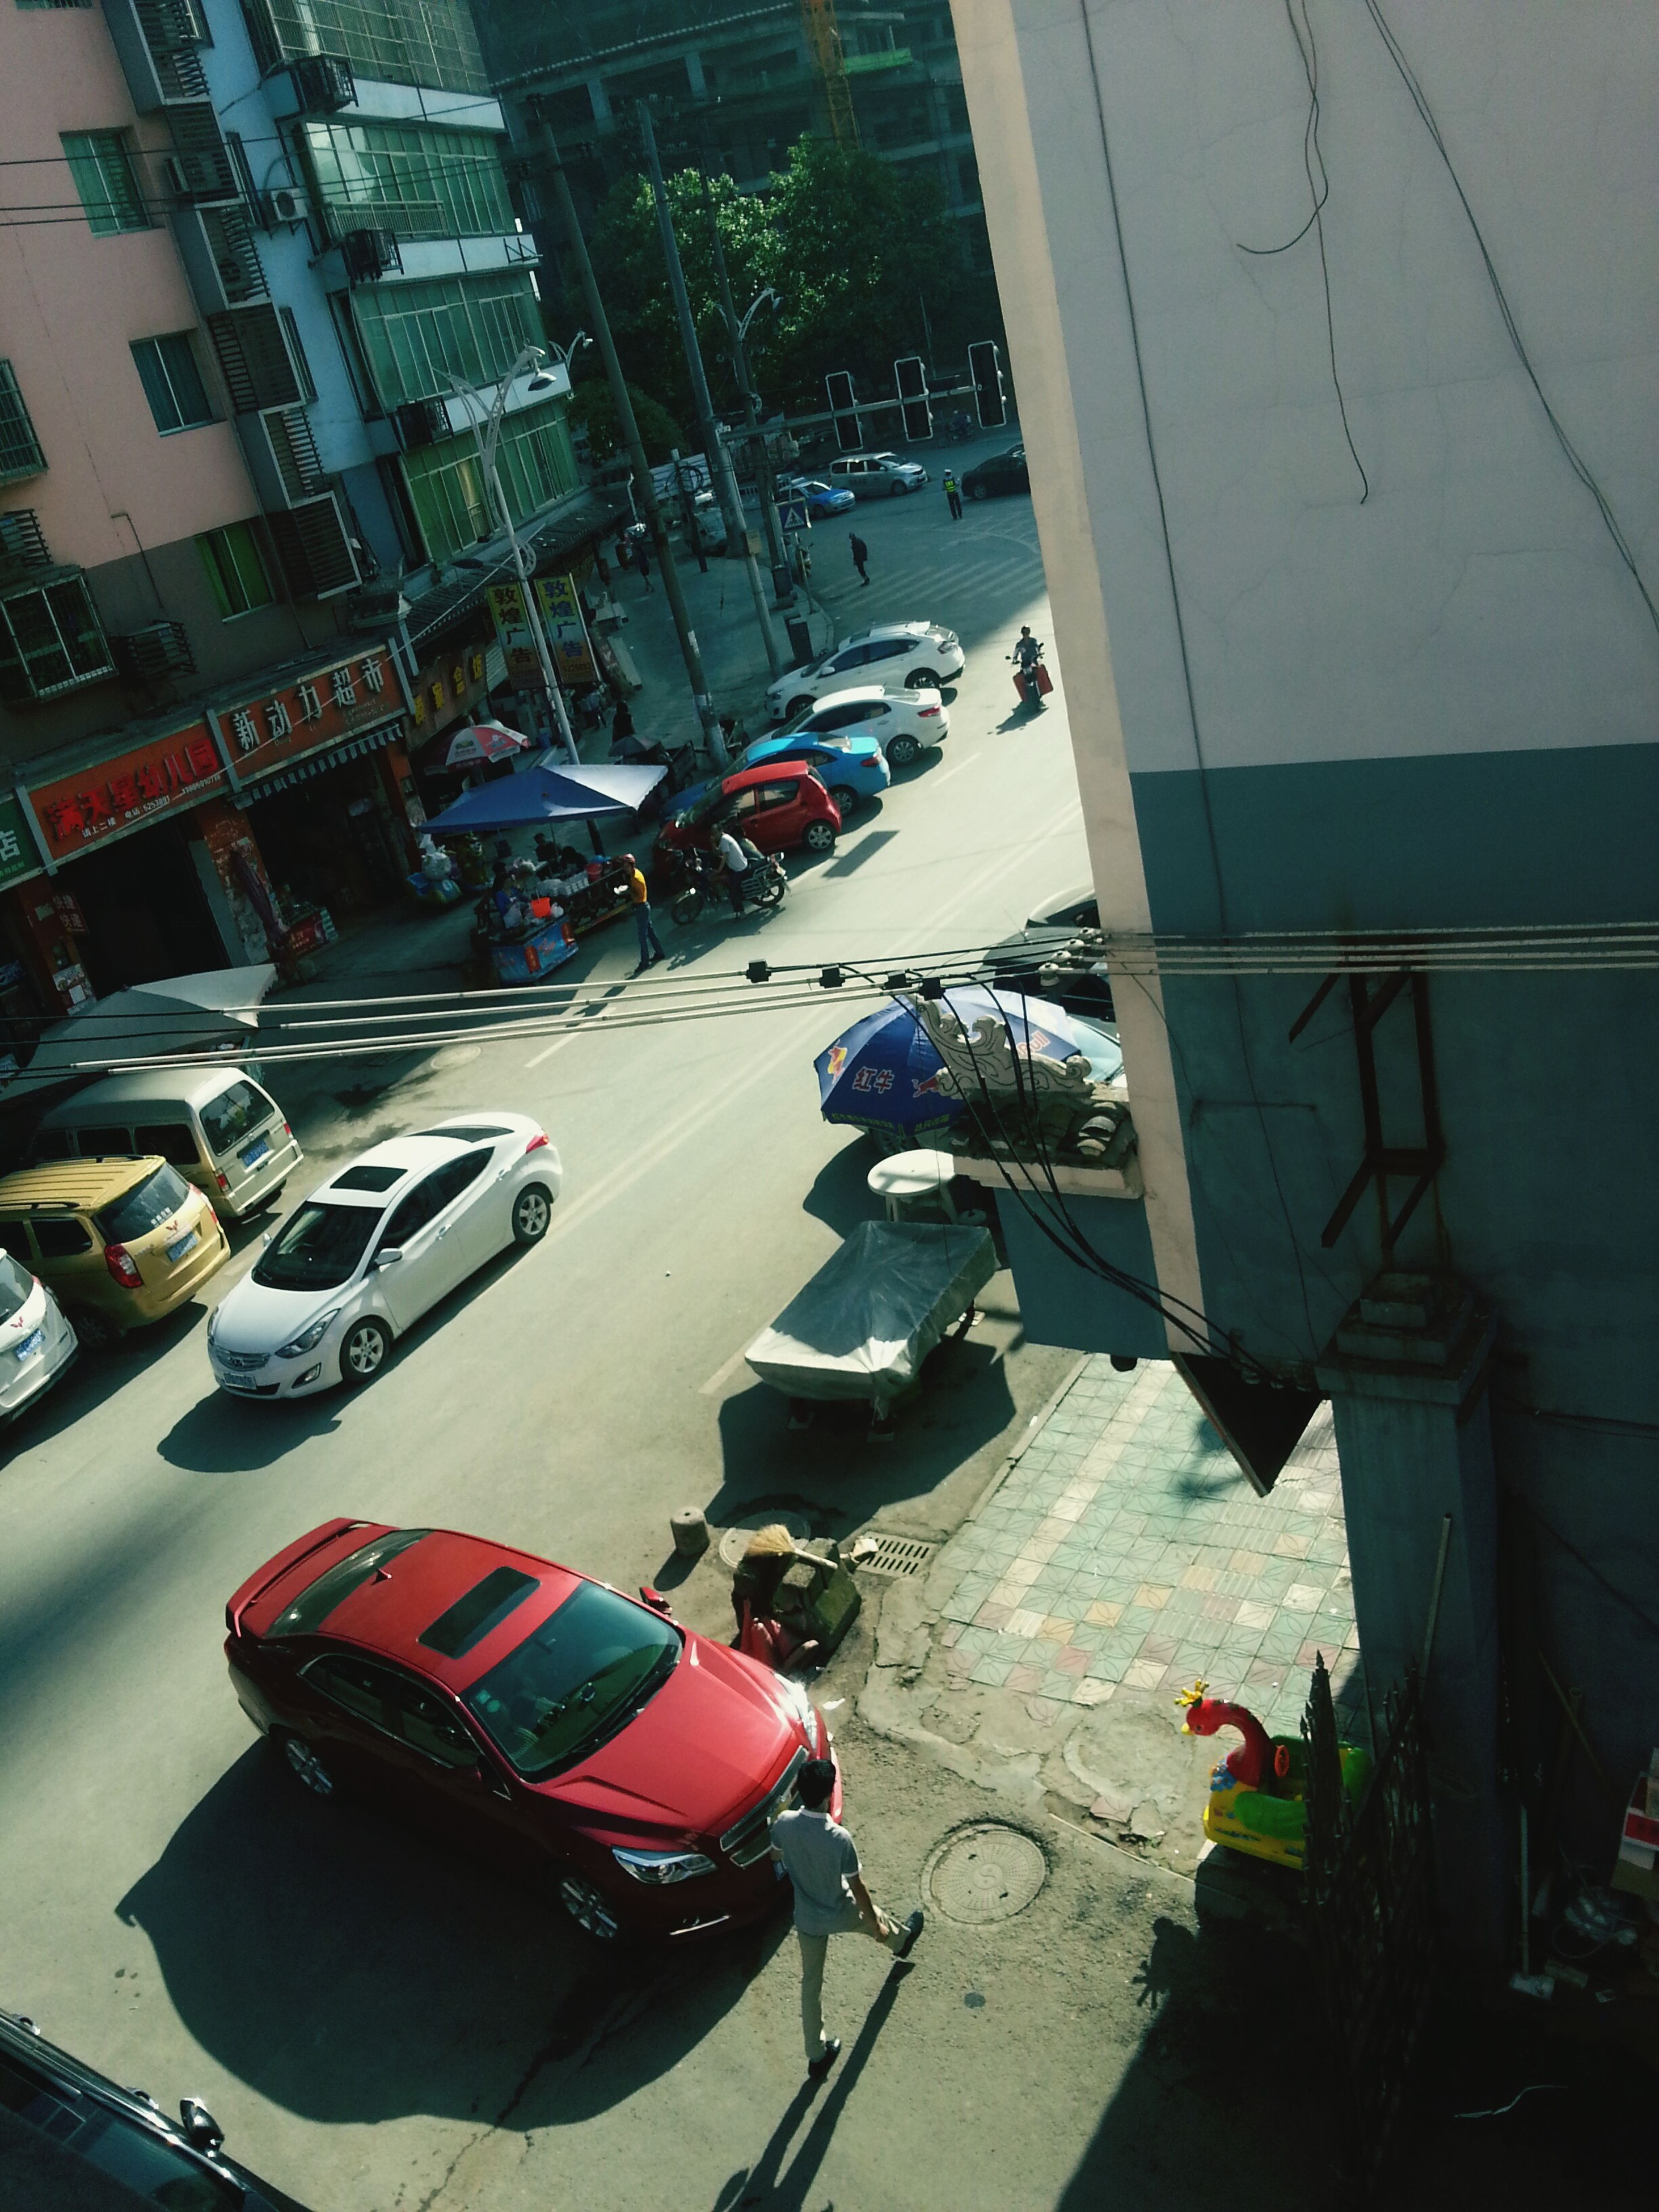 car, transportation, mode of transport, land vehicle, street, building exterior, city, high angle view, architecture, built structure, road, parking, city life, city street, incidental people, traffic, stationary, outdoors, day, parking lot